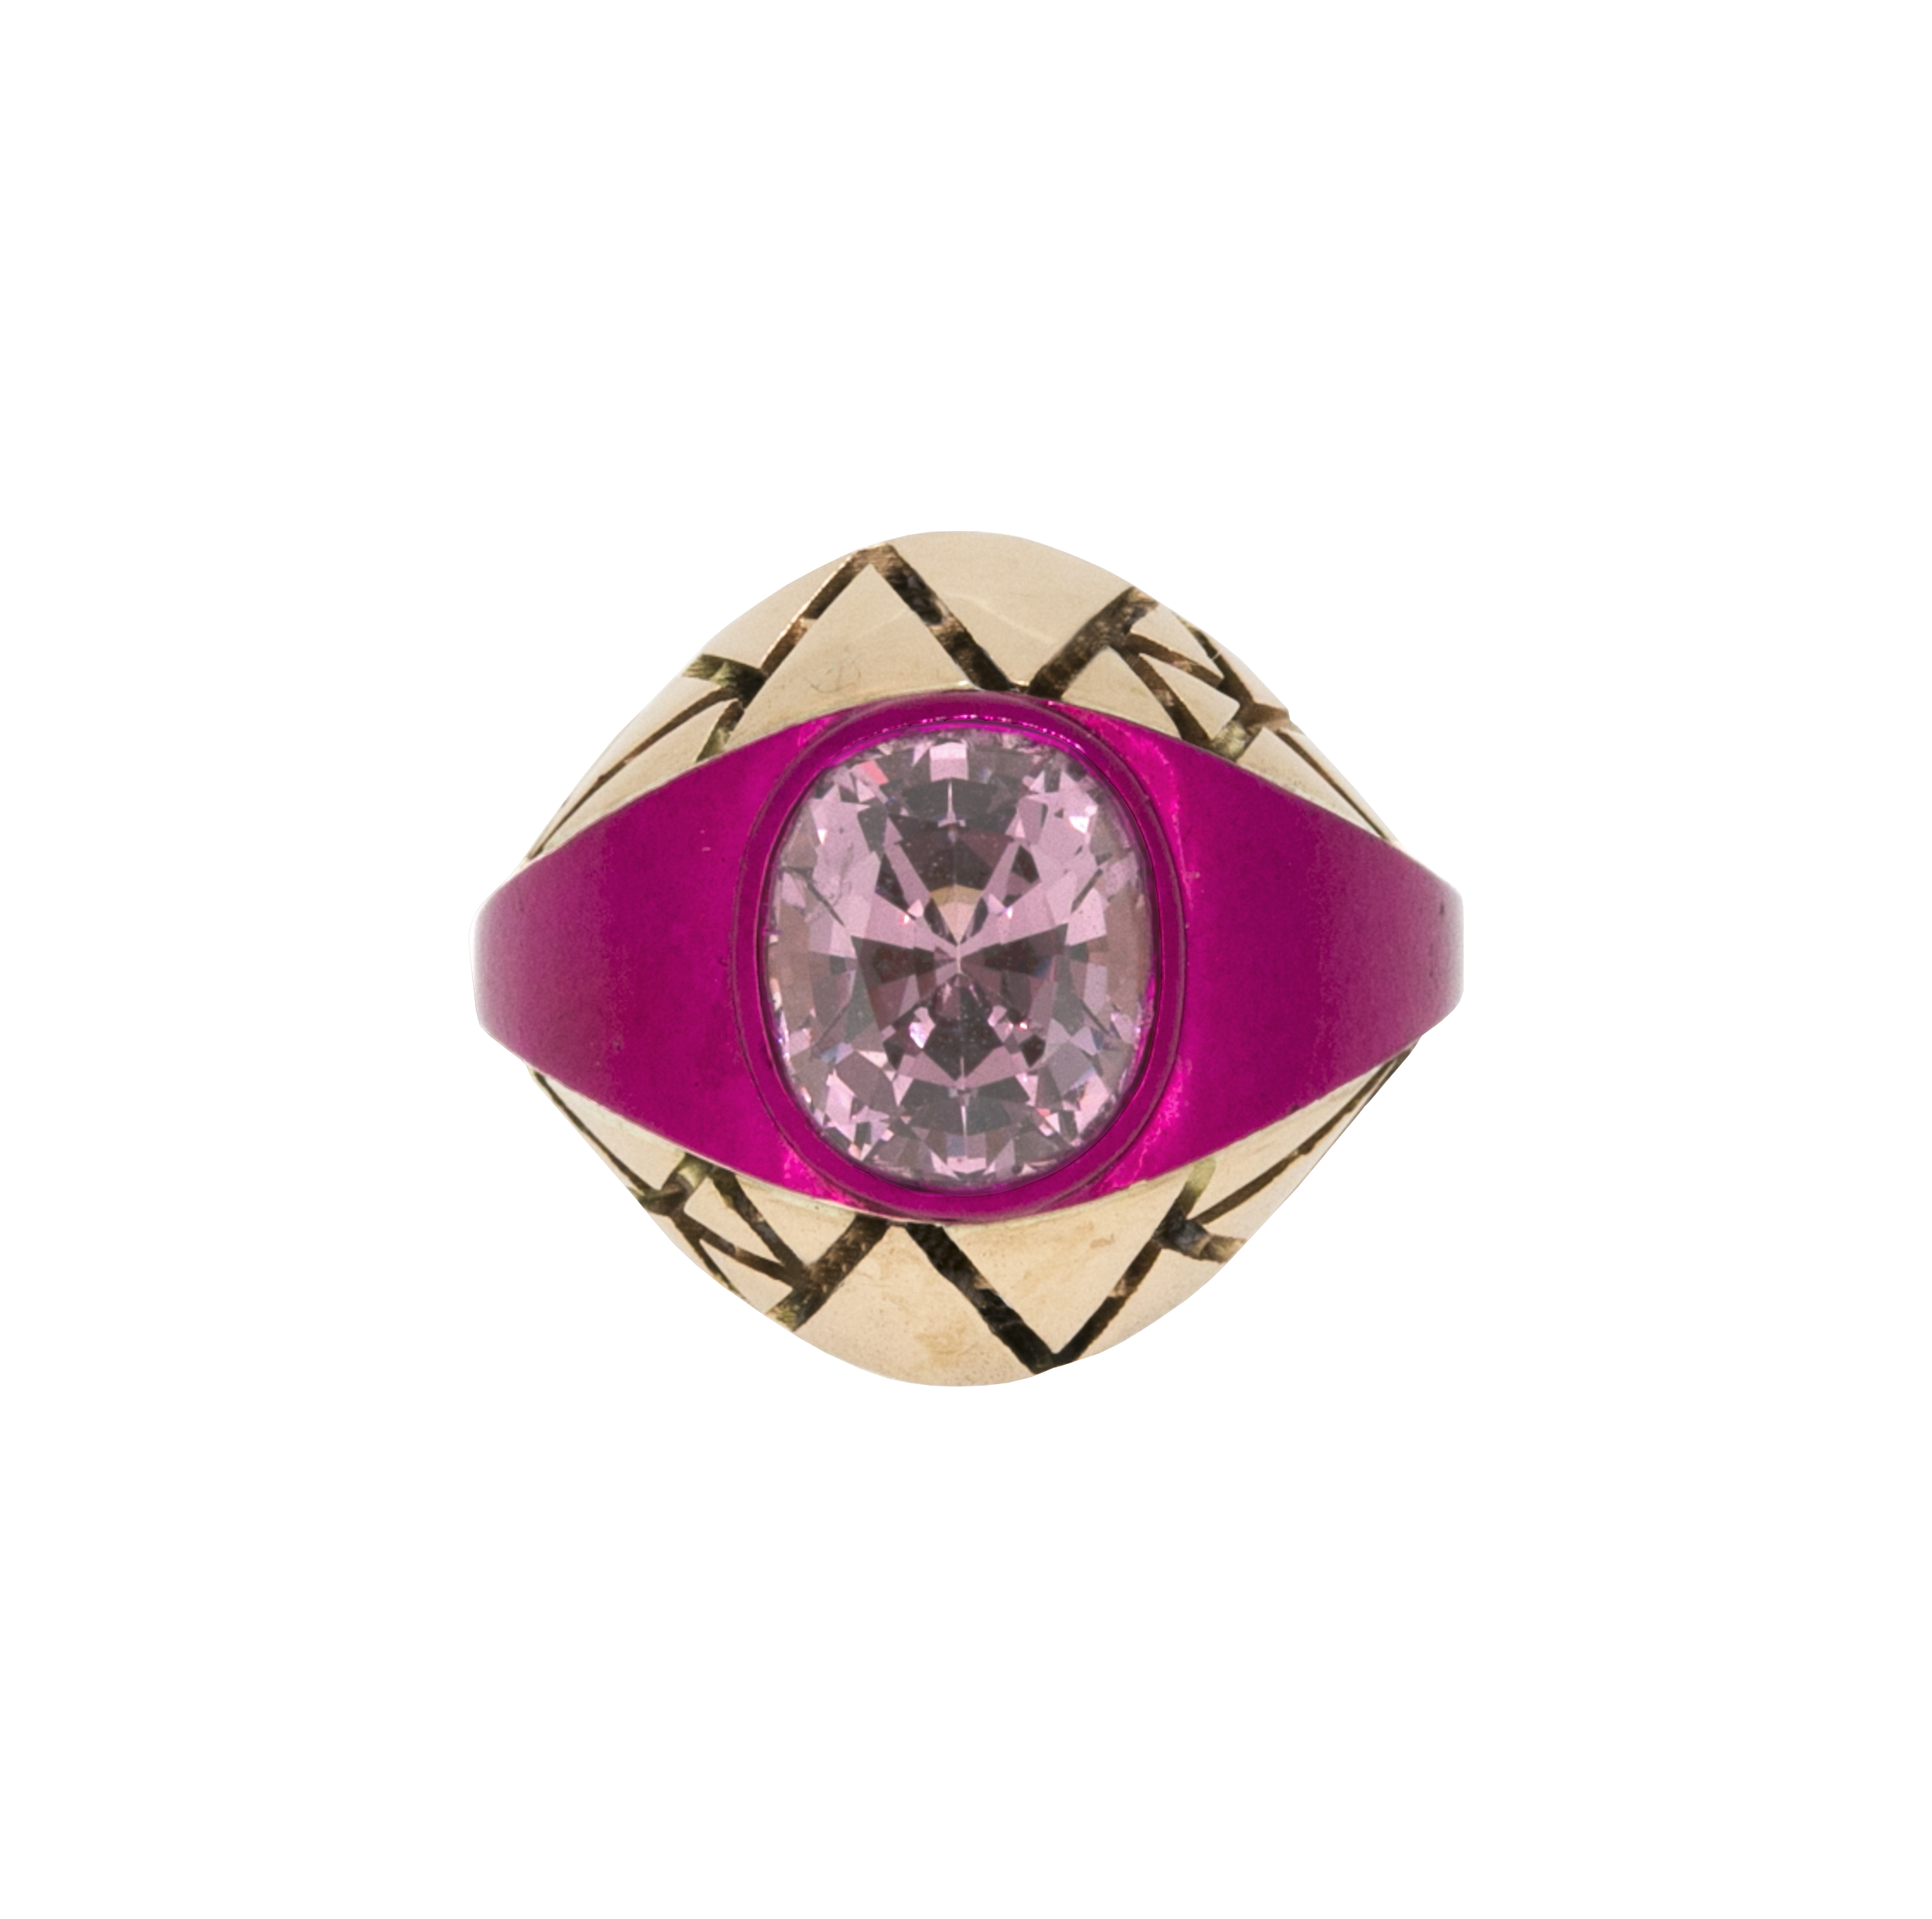 Chromanteq 9ct Recycled Rose Gold, Pink Nano Ceramic Plated Ring with 2.74ct Lilac Myanmar Spinel